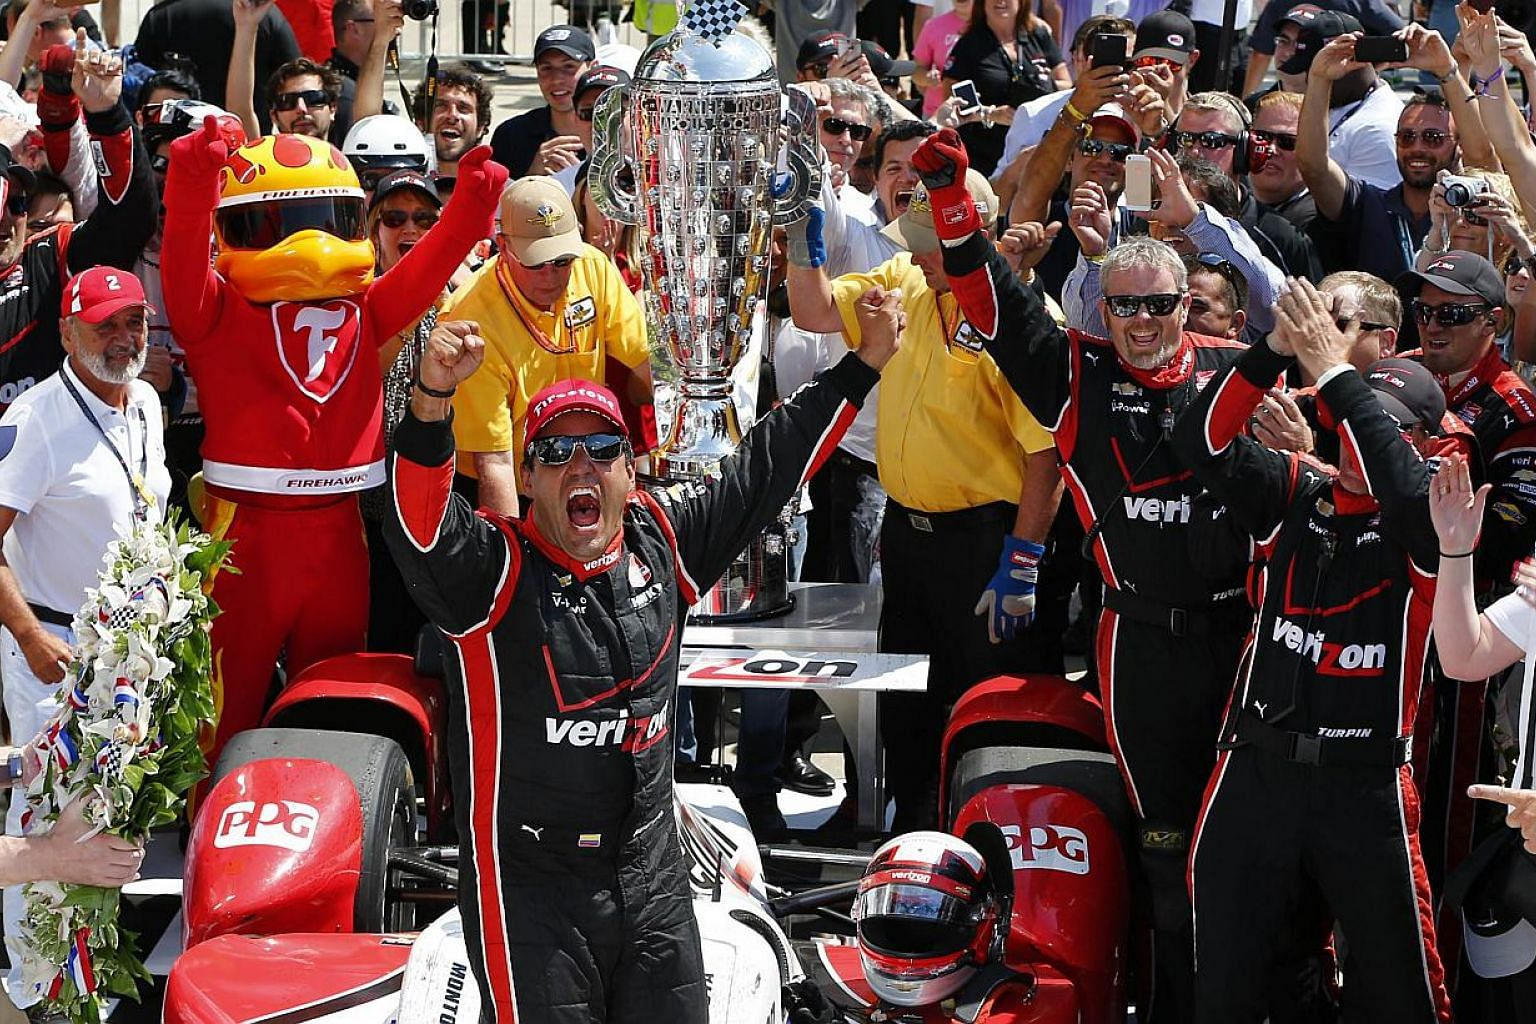 Juan Pablo Montoya of Colombia, driver of the #2 Team Penske Chevrolet Dallara celebrates after winning the 99th running of the Indianapolis 500 mile race at the Indianapolis Motor Speedway on May 24, 2015 in Indianapolis, Indiana. -- PHOTO: AFP